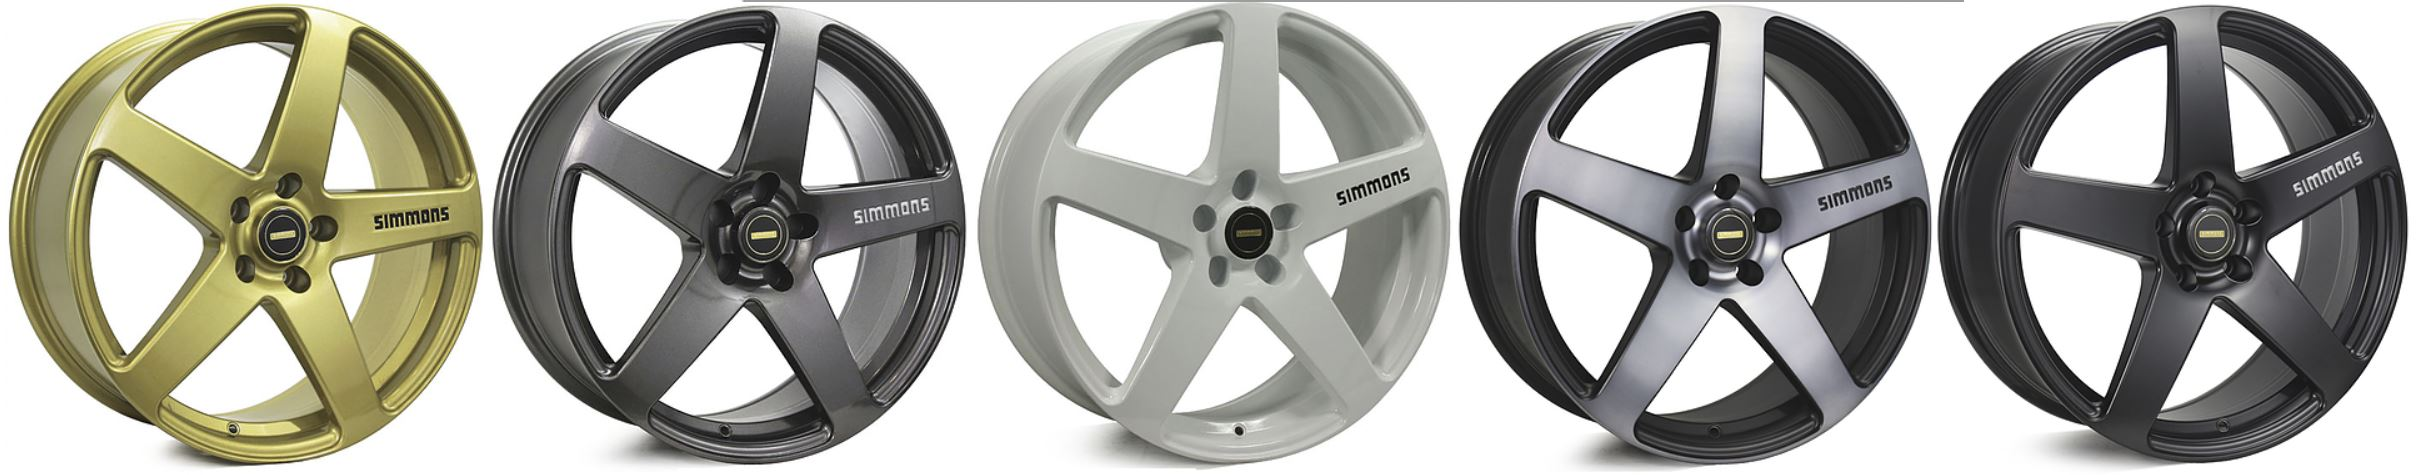 17X8.5 SIMMONS FR-1 WHEEL PACKAGE